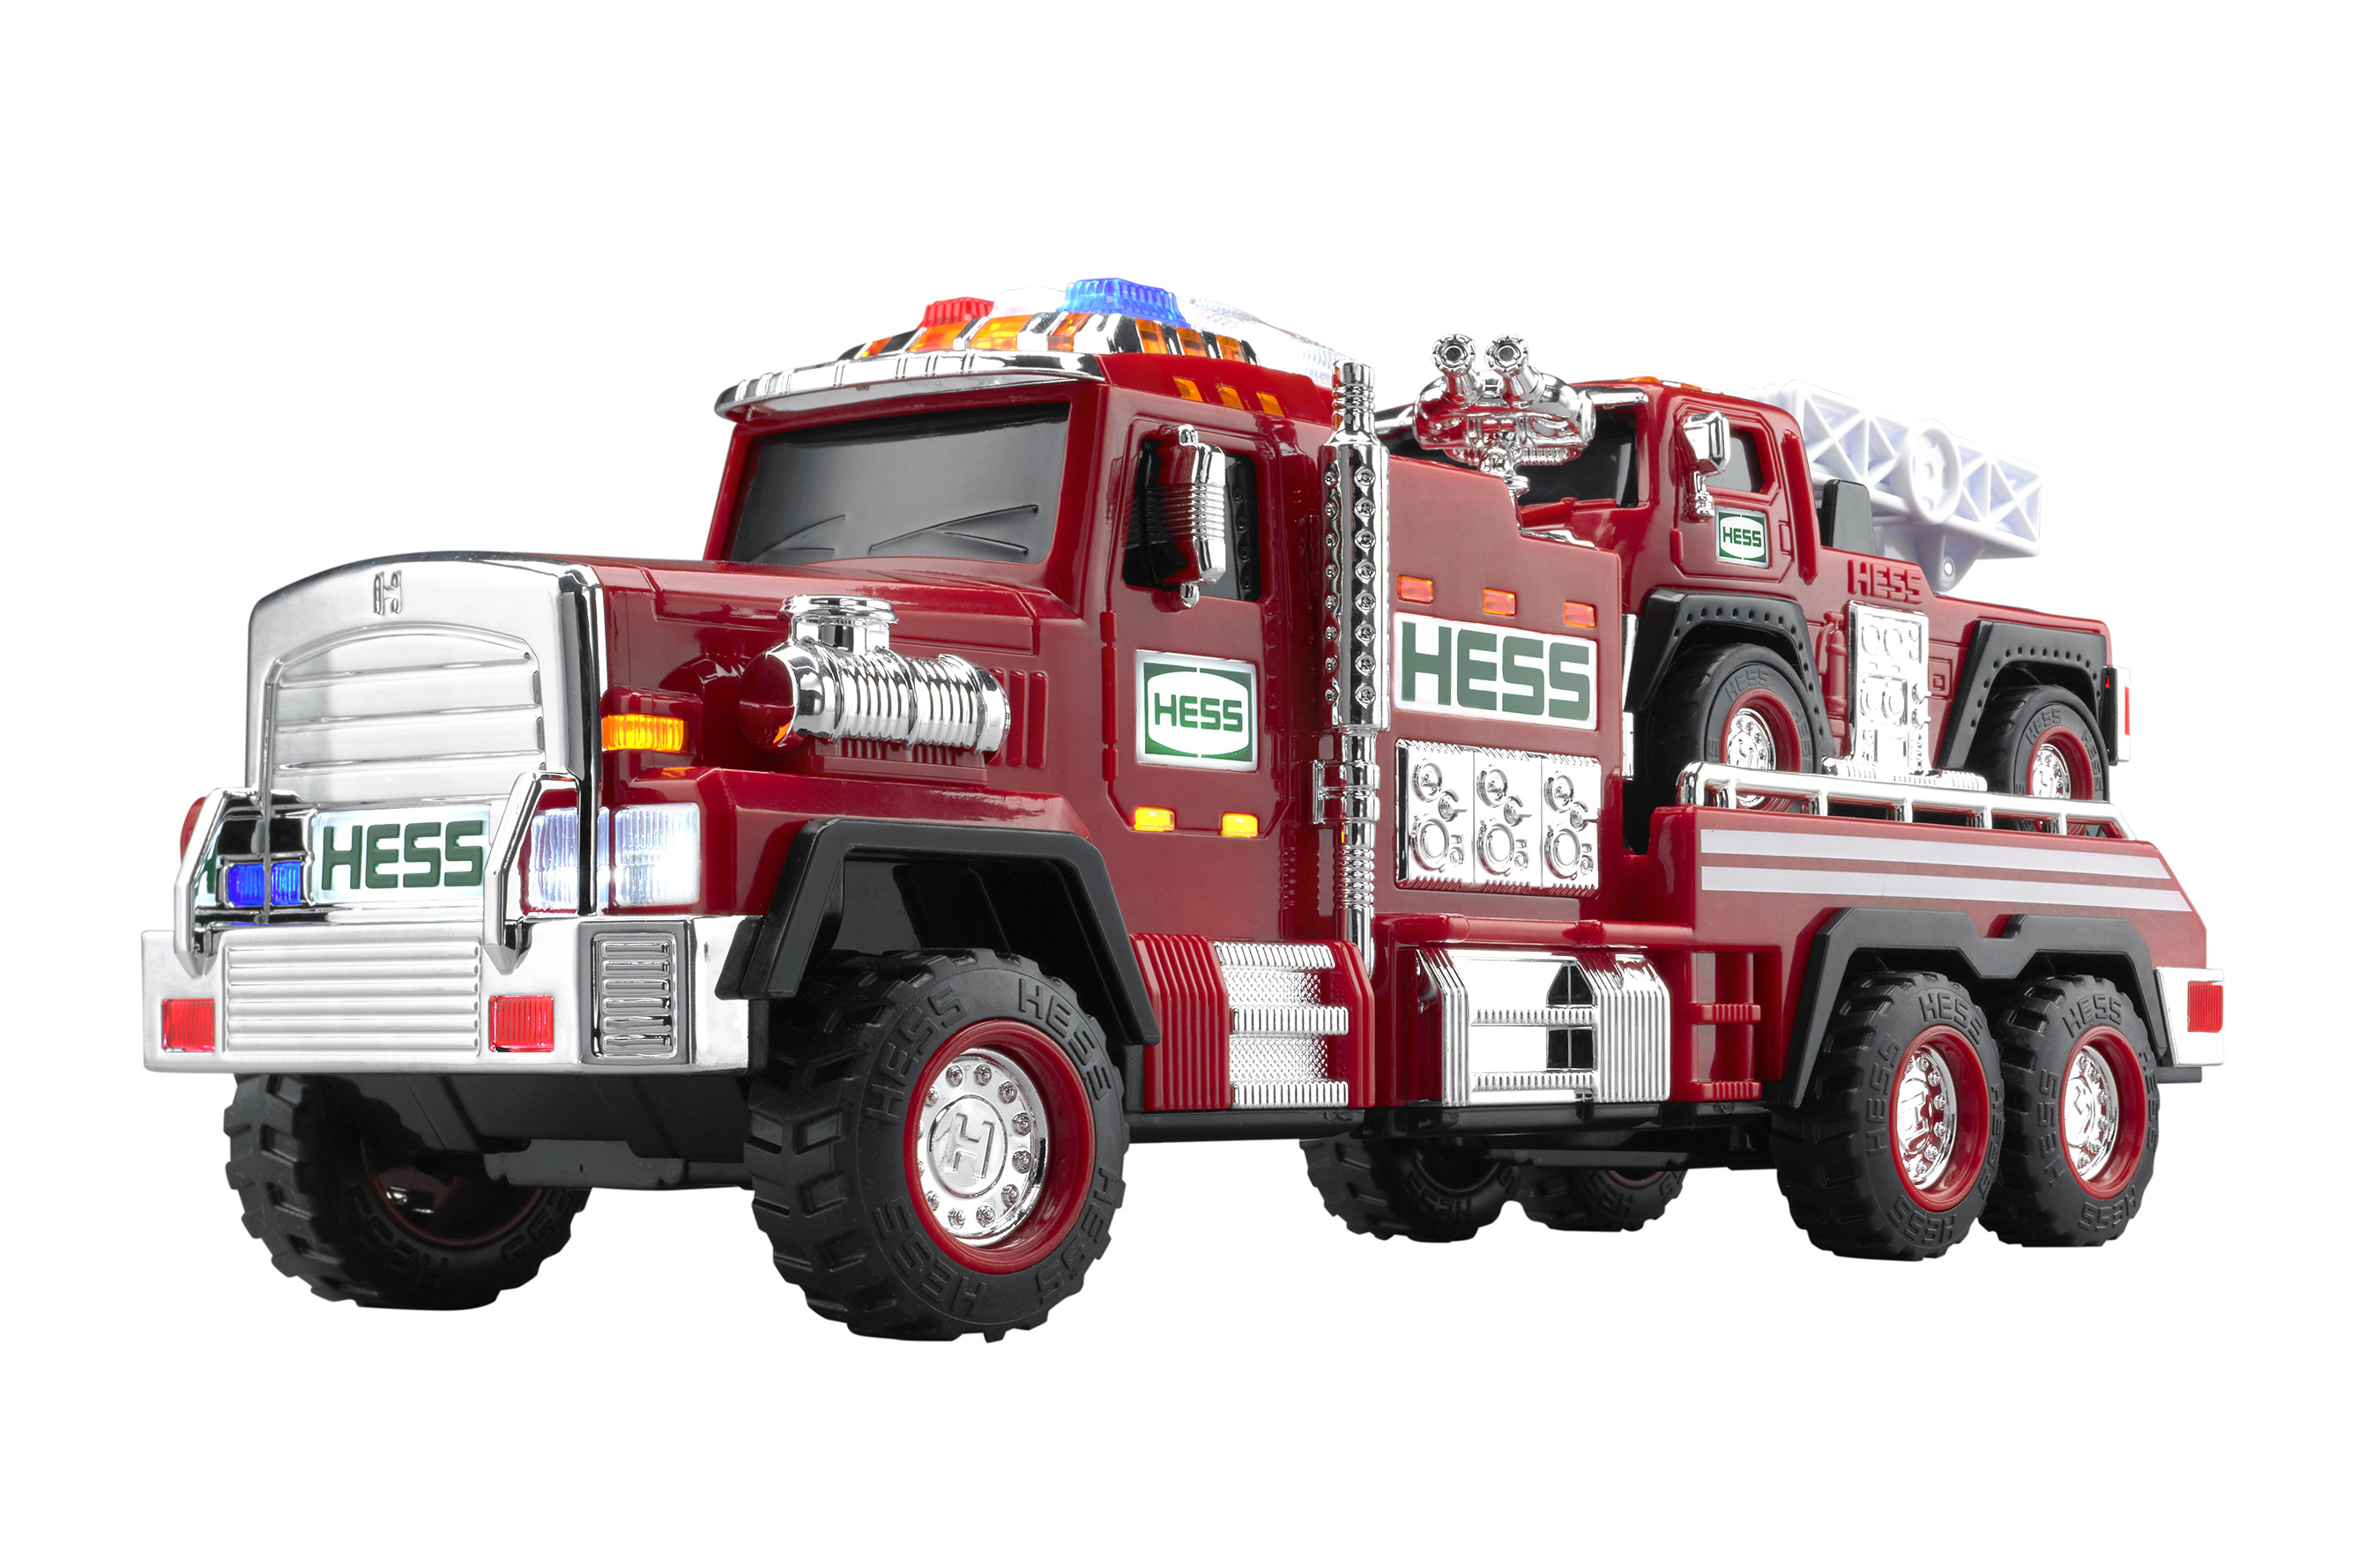 2015 Hess Fire Truck and Ladder Rescue on Sale Nov. 1